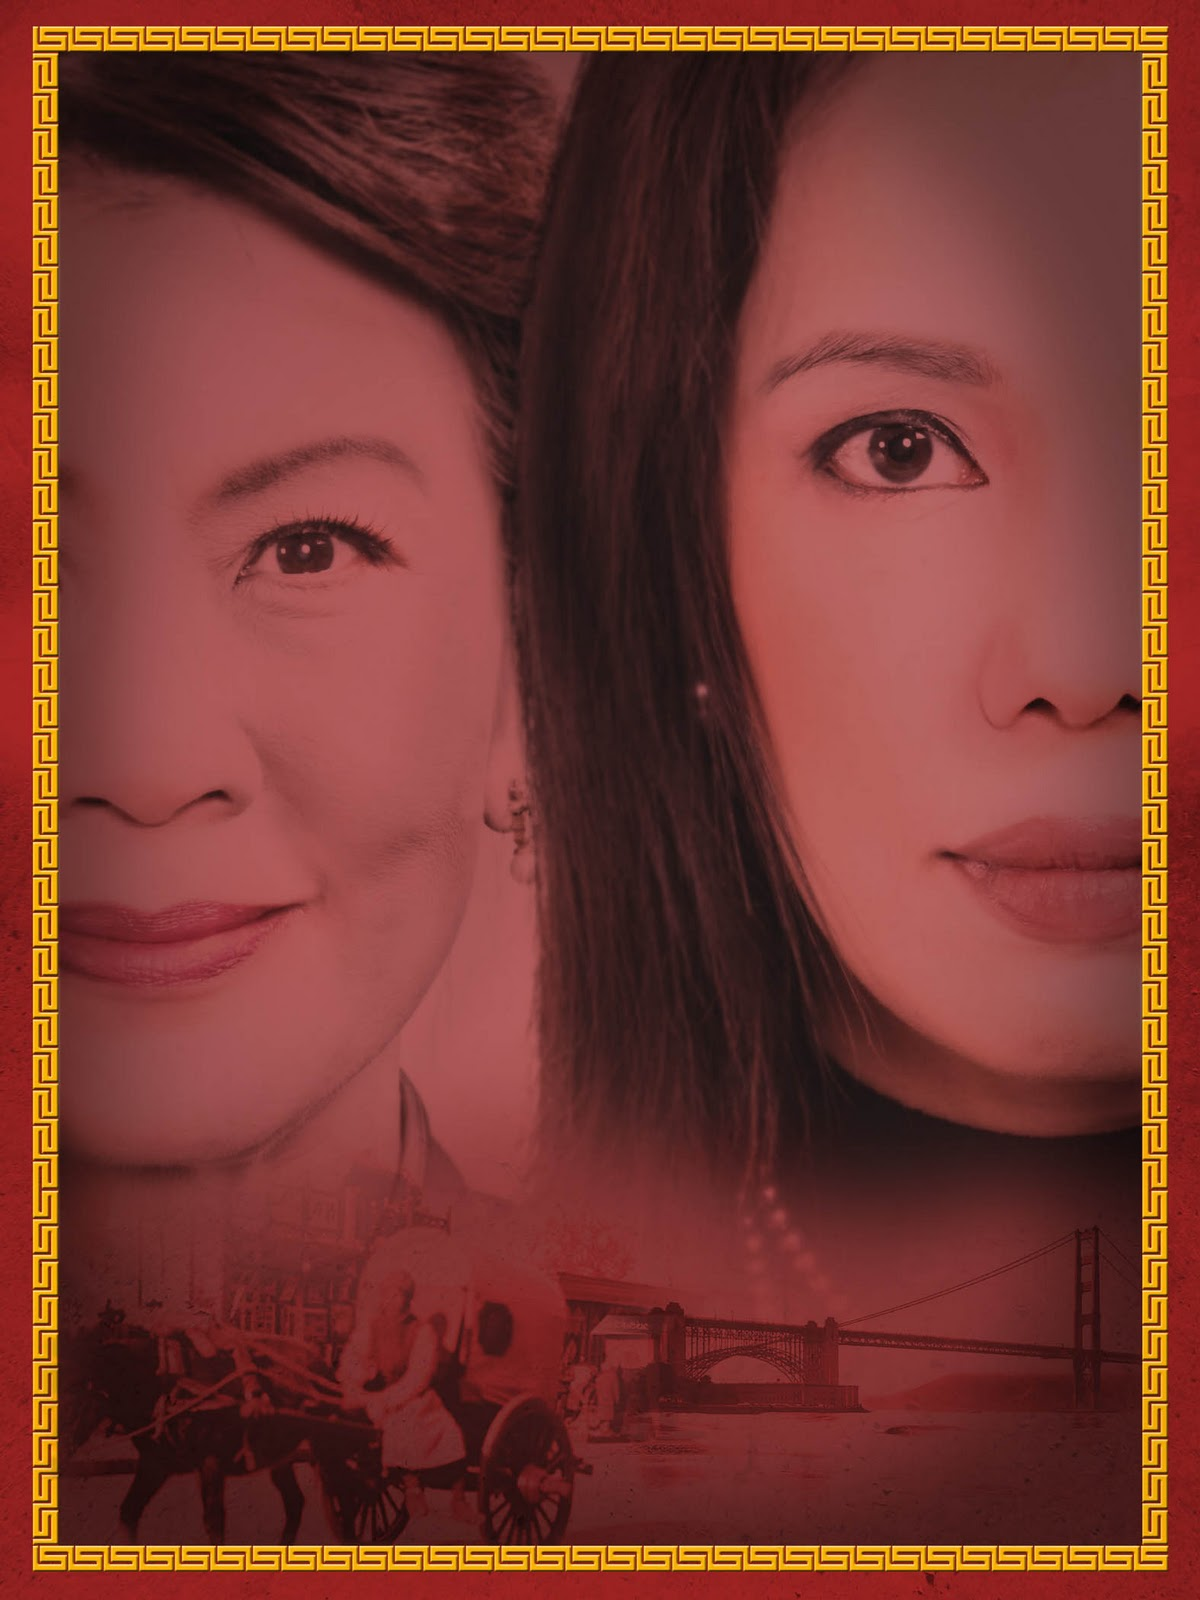 joy luck club reaction paper Reflection of the joy luck club this movie depicted different life experience of  four pairs of chinese mother and daughter though distinct grievous life stories.